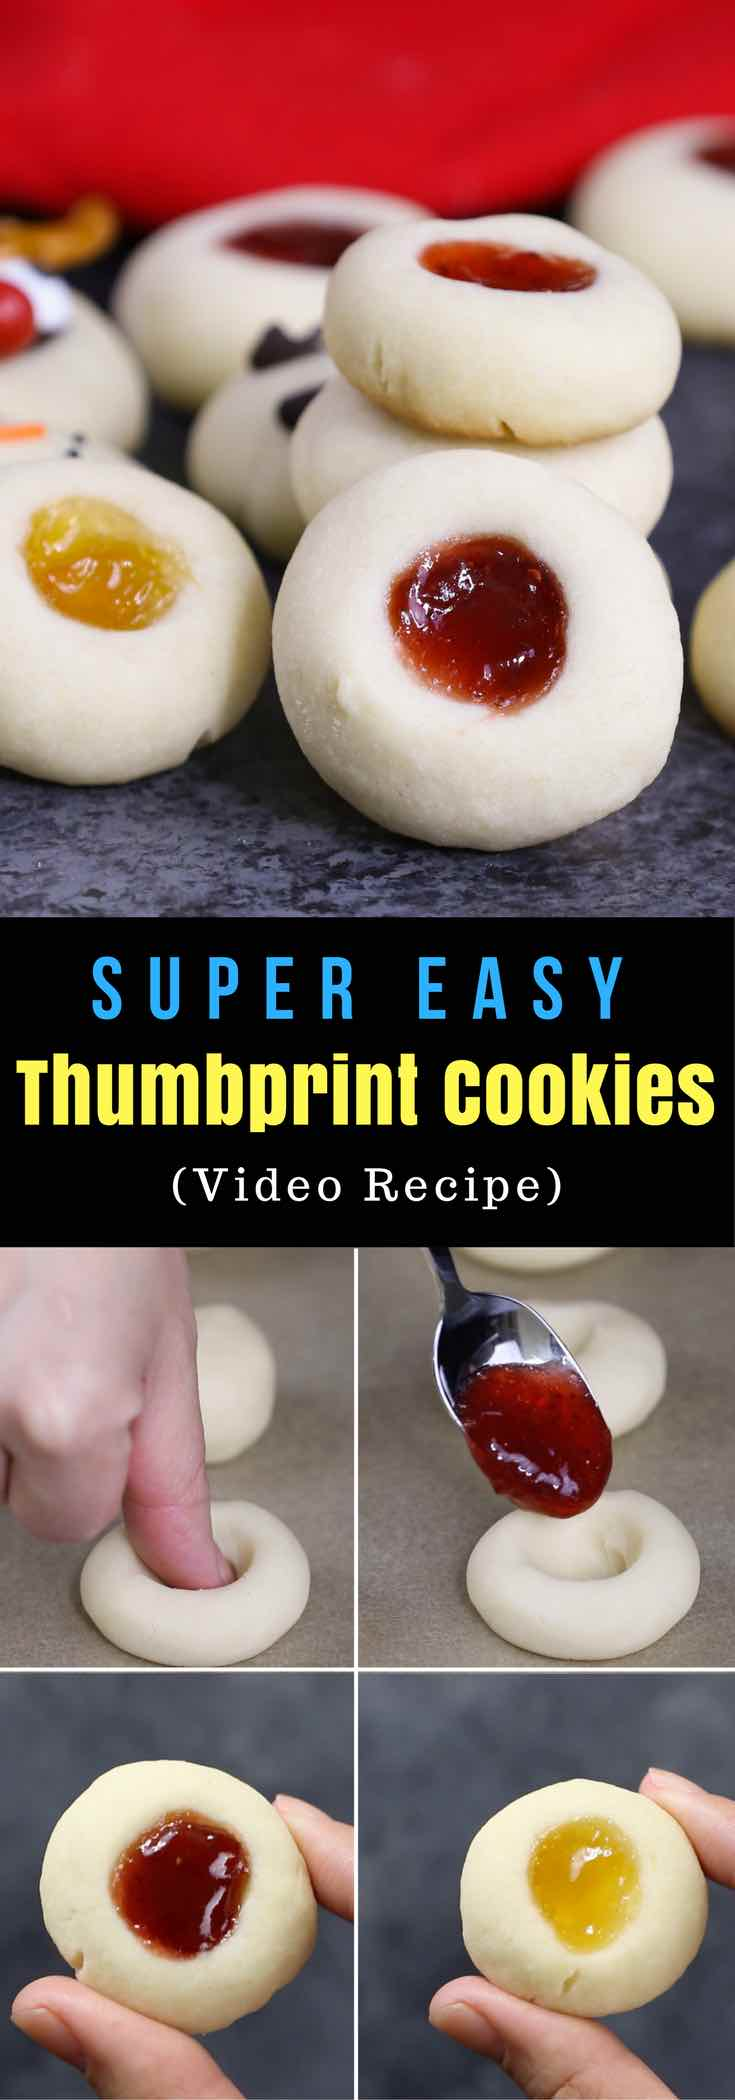 Thumbprint Cookies with 5 fun variations and no chilling required. They are the classic melt-in-your-mouth shortbread cookies and addictive treats for parties, holidays and just everyday and perfect as gifts too. Jam Thumbprint Cookies, Reindeer Thumbprint Cookies, Snowman Thumbprint Cookis, Polar Bear Paw Thumbprint Cookies, and Christmas Thumbprint Cookies